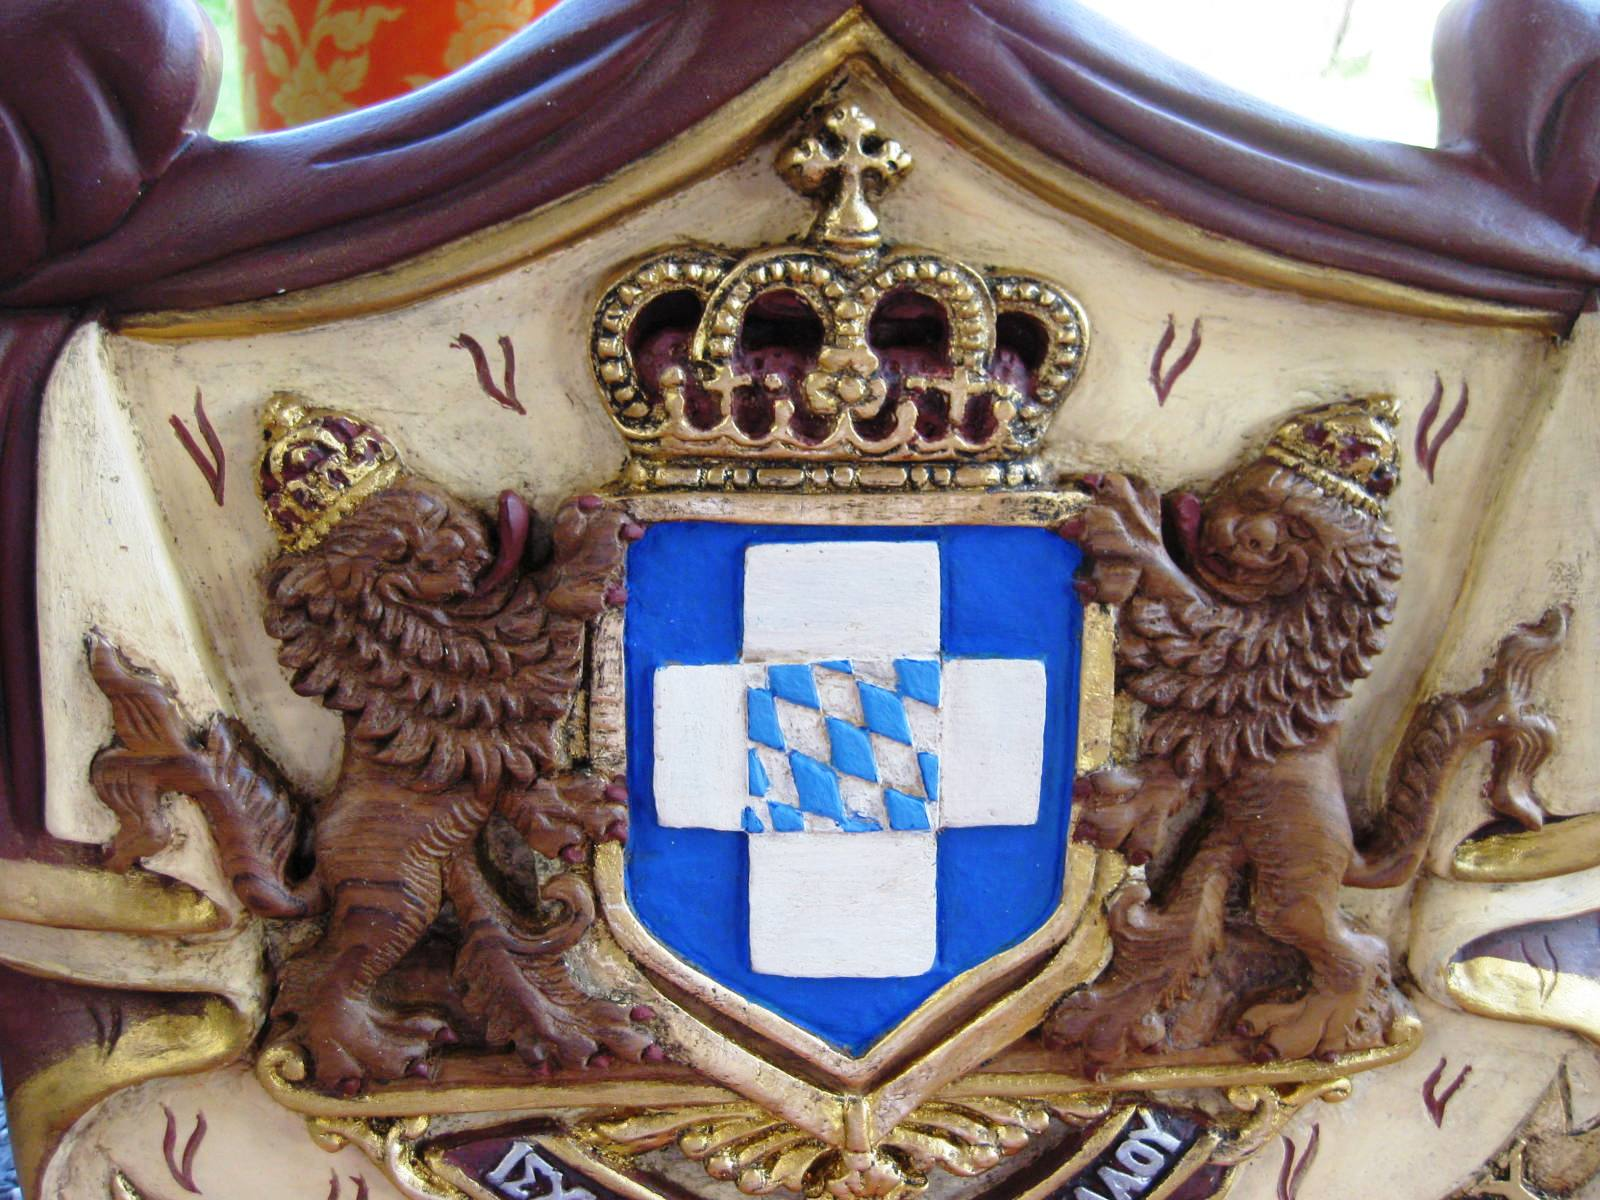 Greek Royal Arm Code Lions Crest